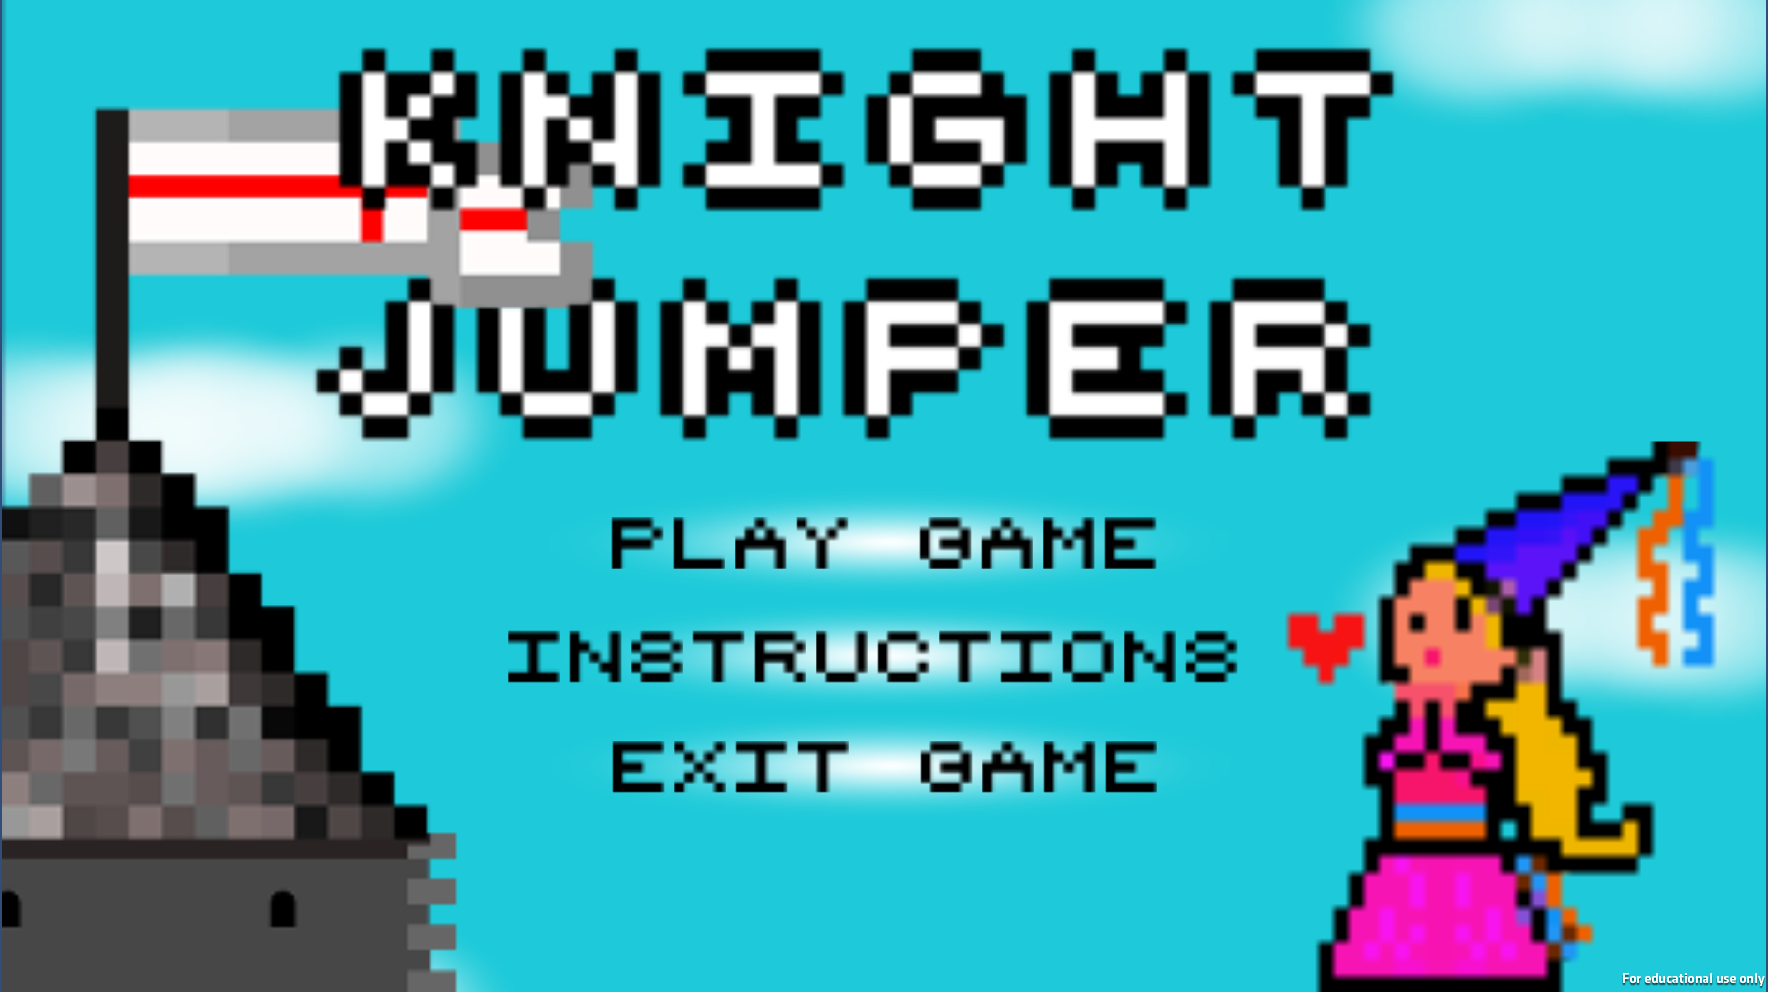 Knight Jumper